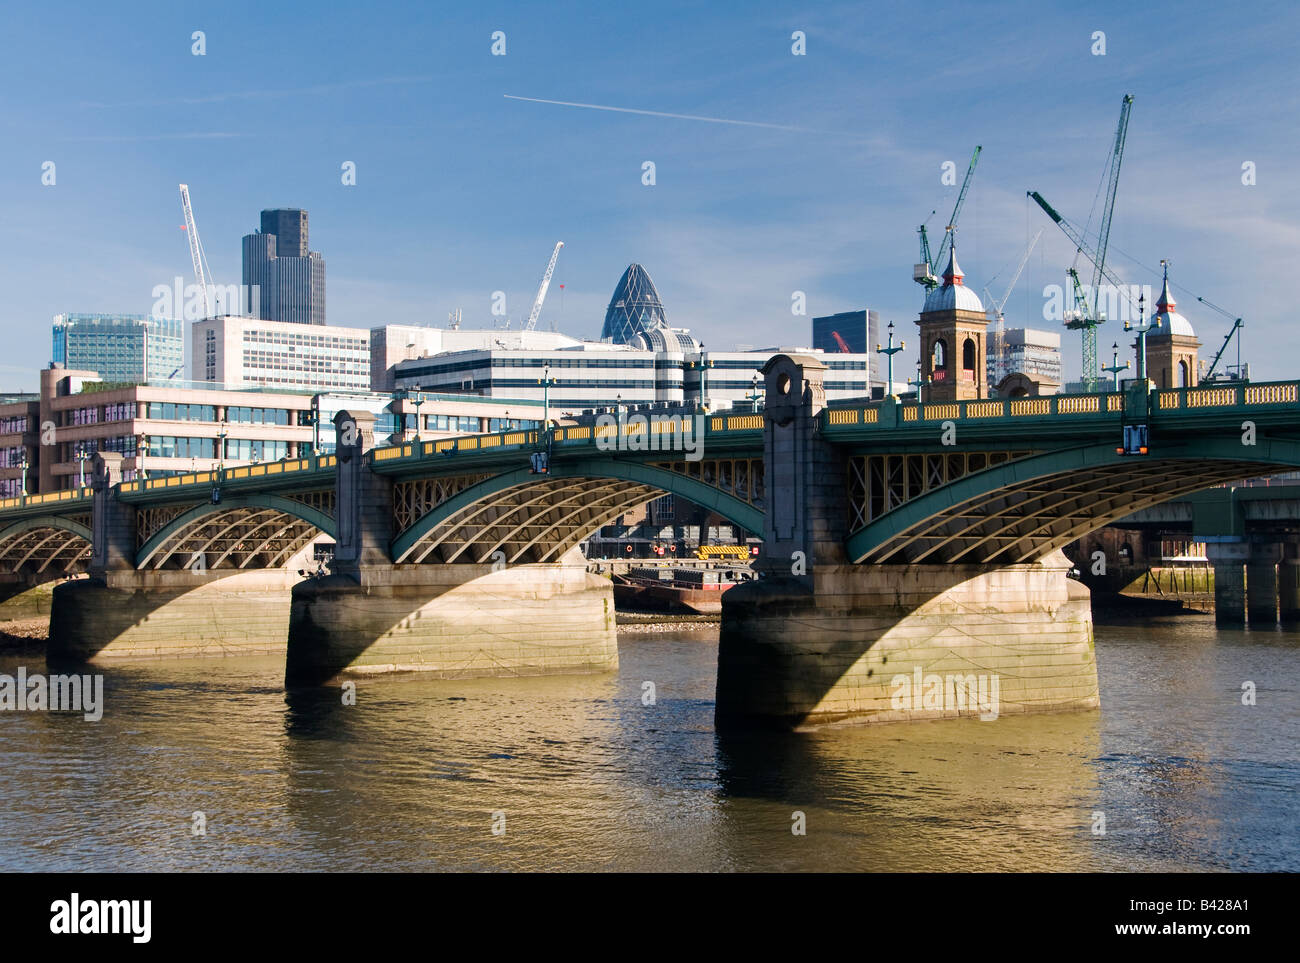 Southwark Bridge from the south bank of the Thames with Tower 42 and the Swiss Re Tower seen above the bridge, London, - Stock Image